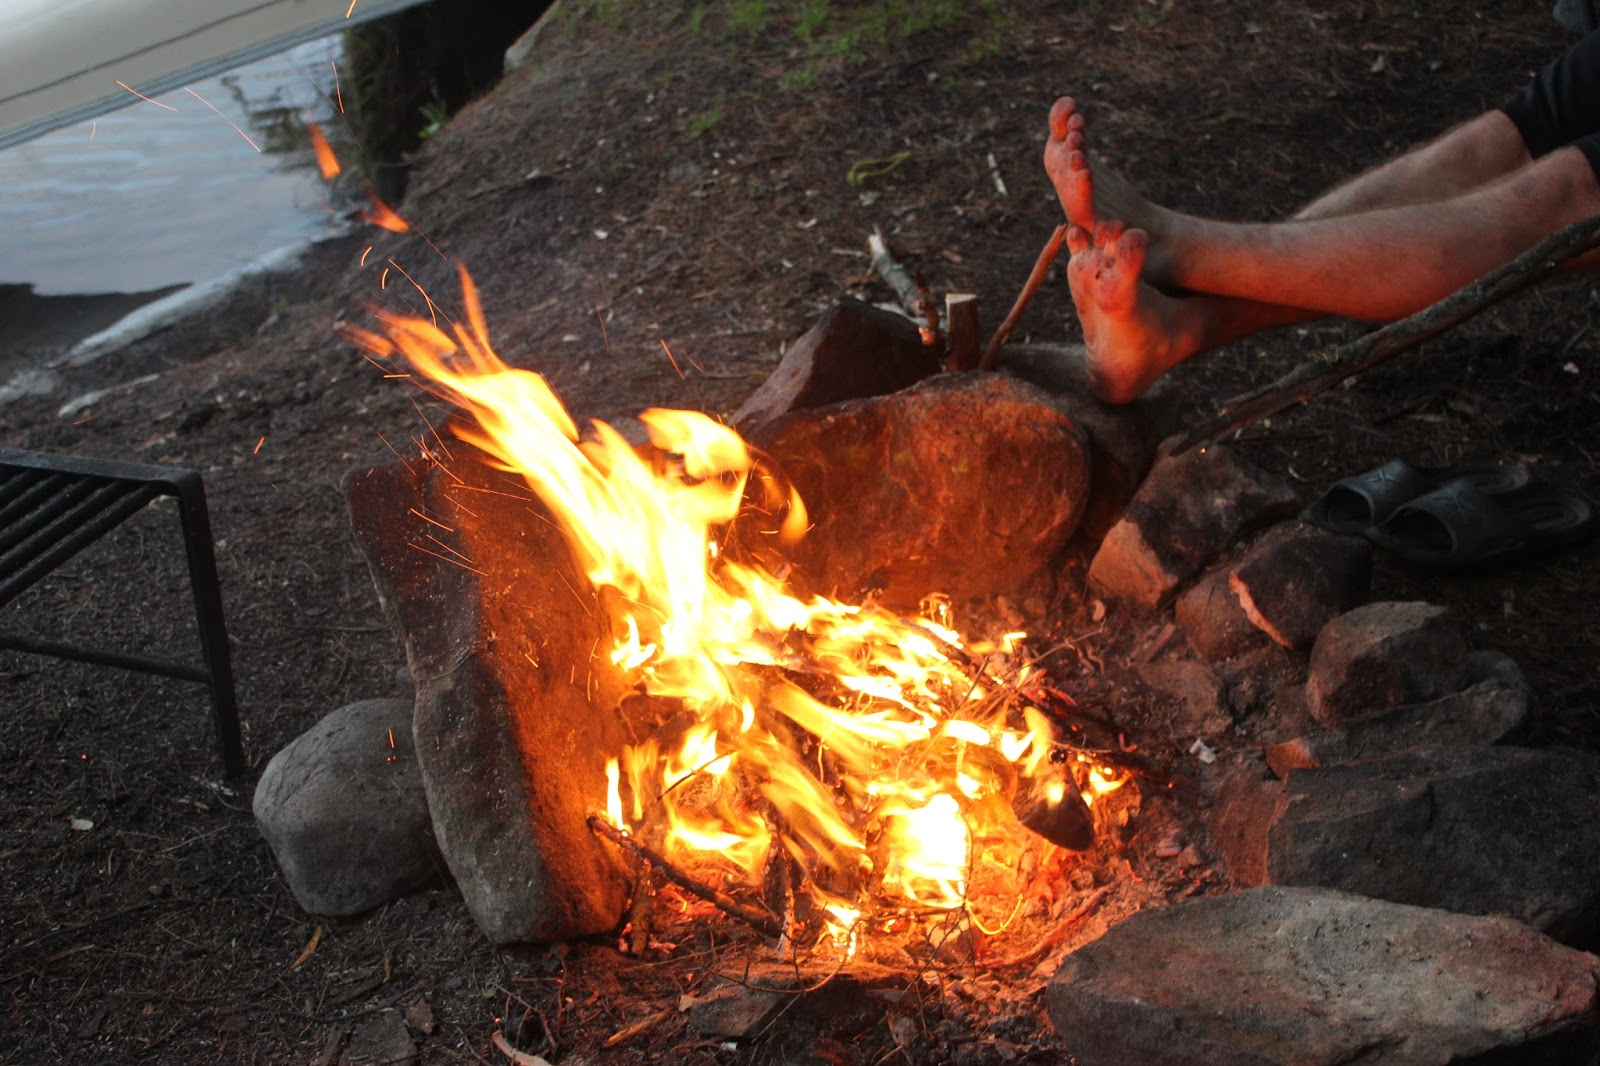 Camping at Canisbay, Algonquin Provincial Park